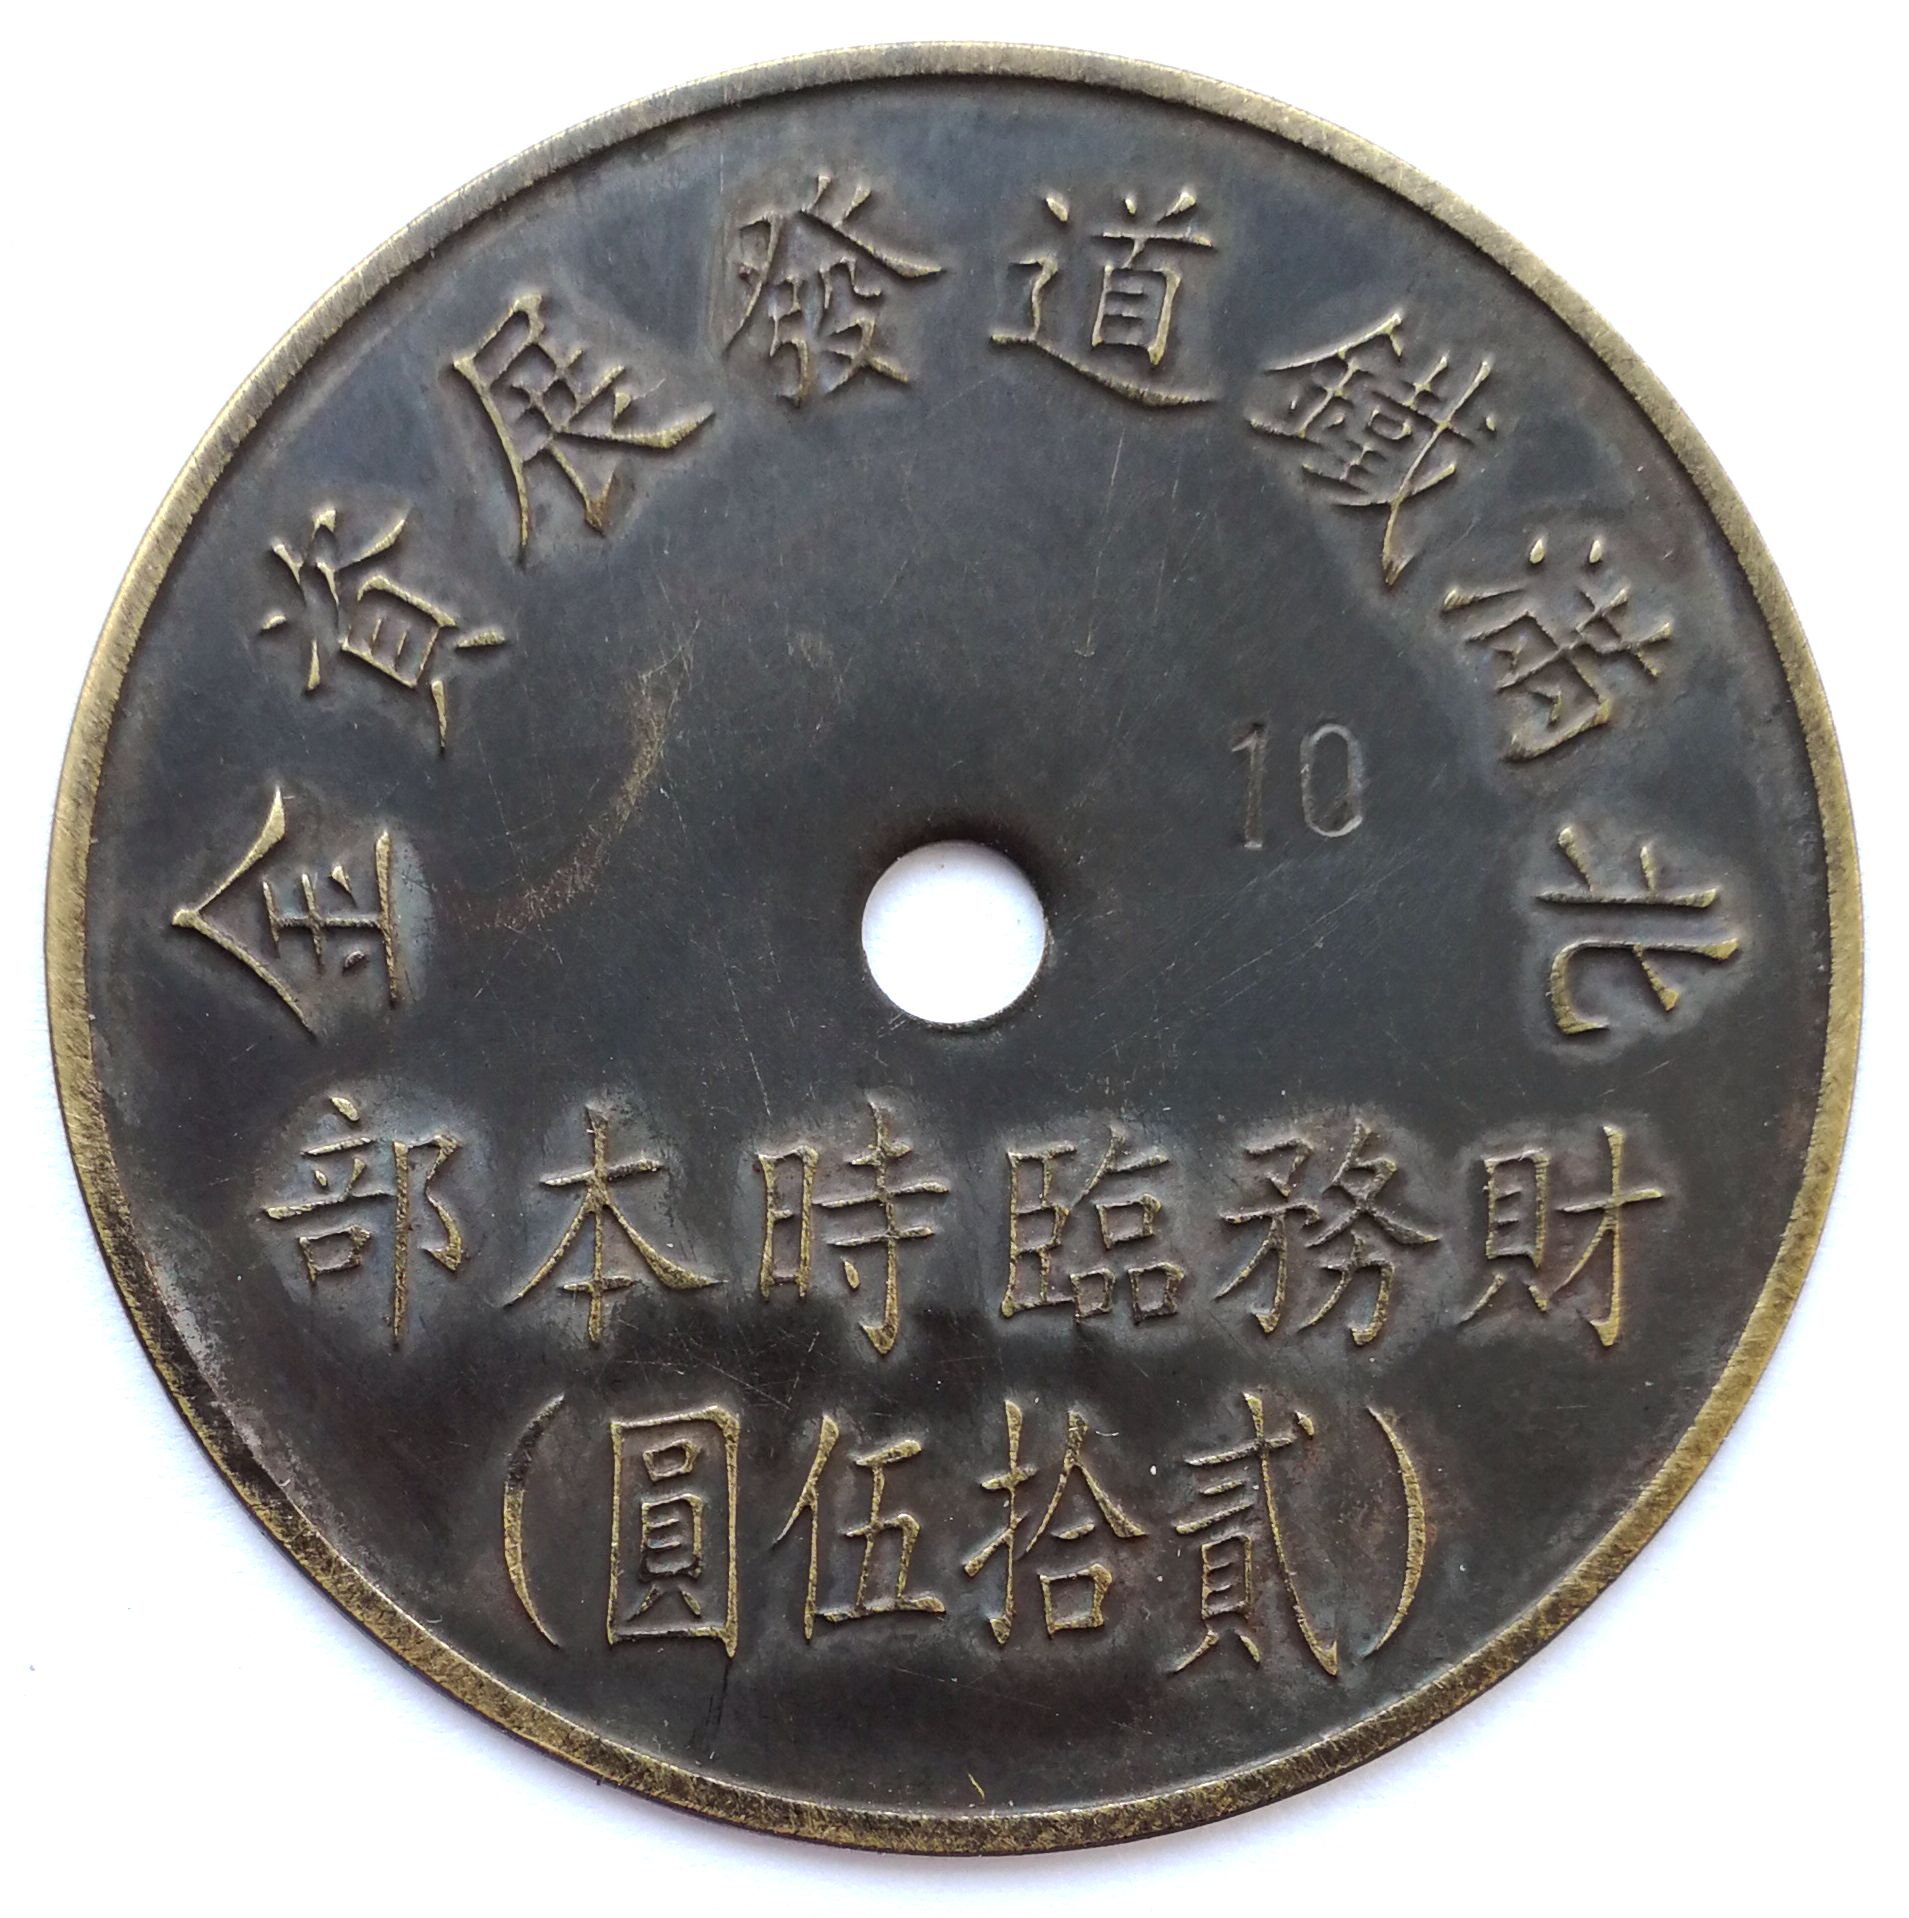 BT473, North Manchukuo Railway Construction Fund, Manchukuo Token, 25 Yen 1945